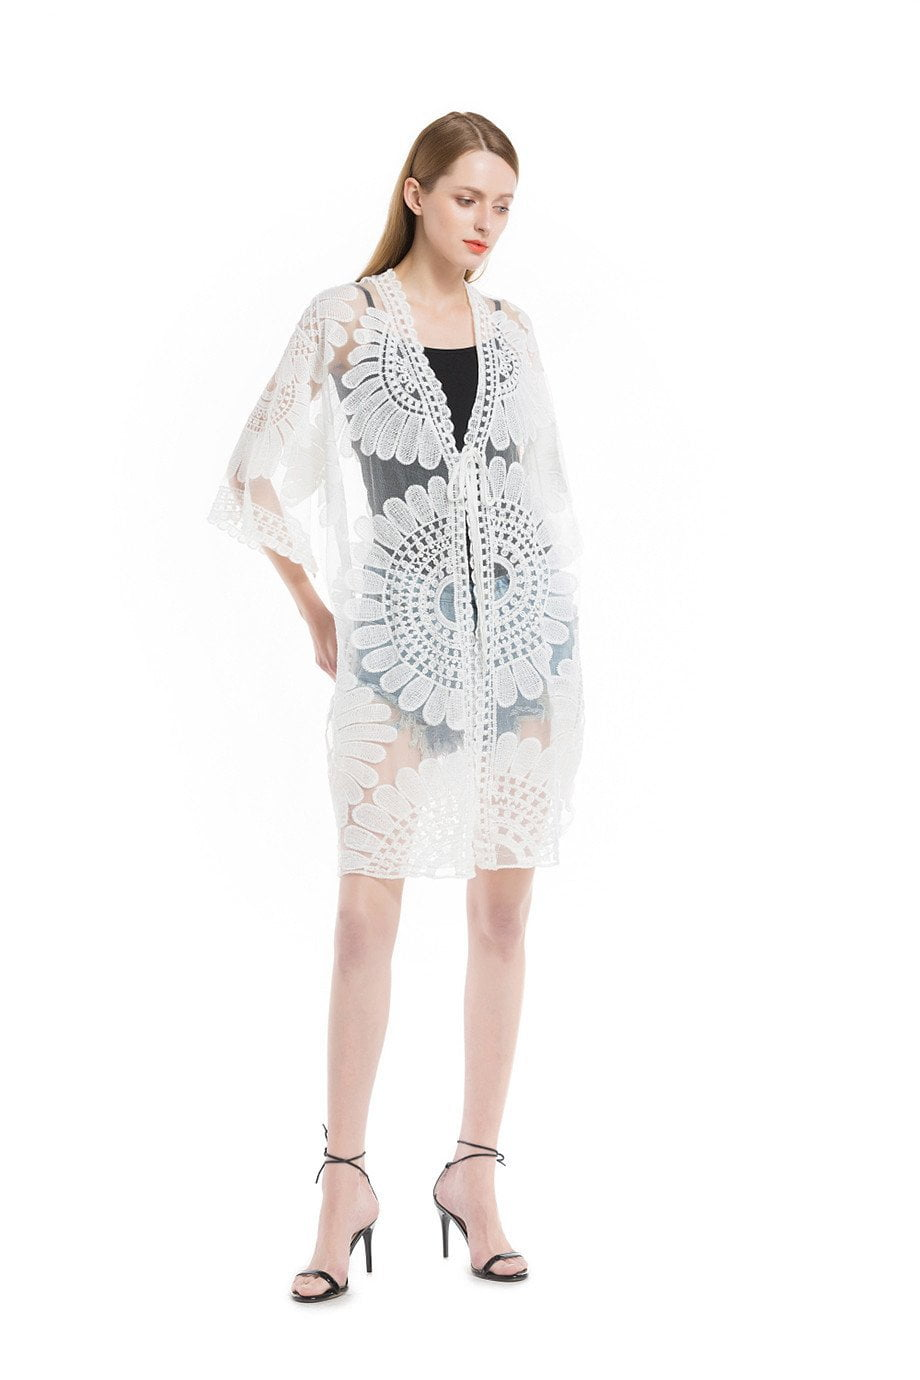 Long Lace Blouse White New Fashion Holiday Summer Women Tops Beach Cover Up Casual Embroidery Floral Cardigan-Blouse-SheSimplyShops